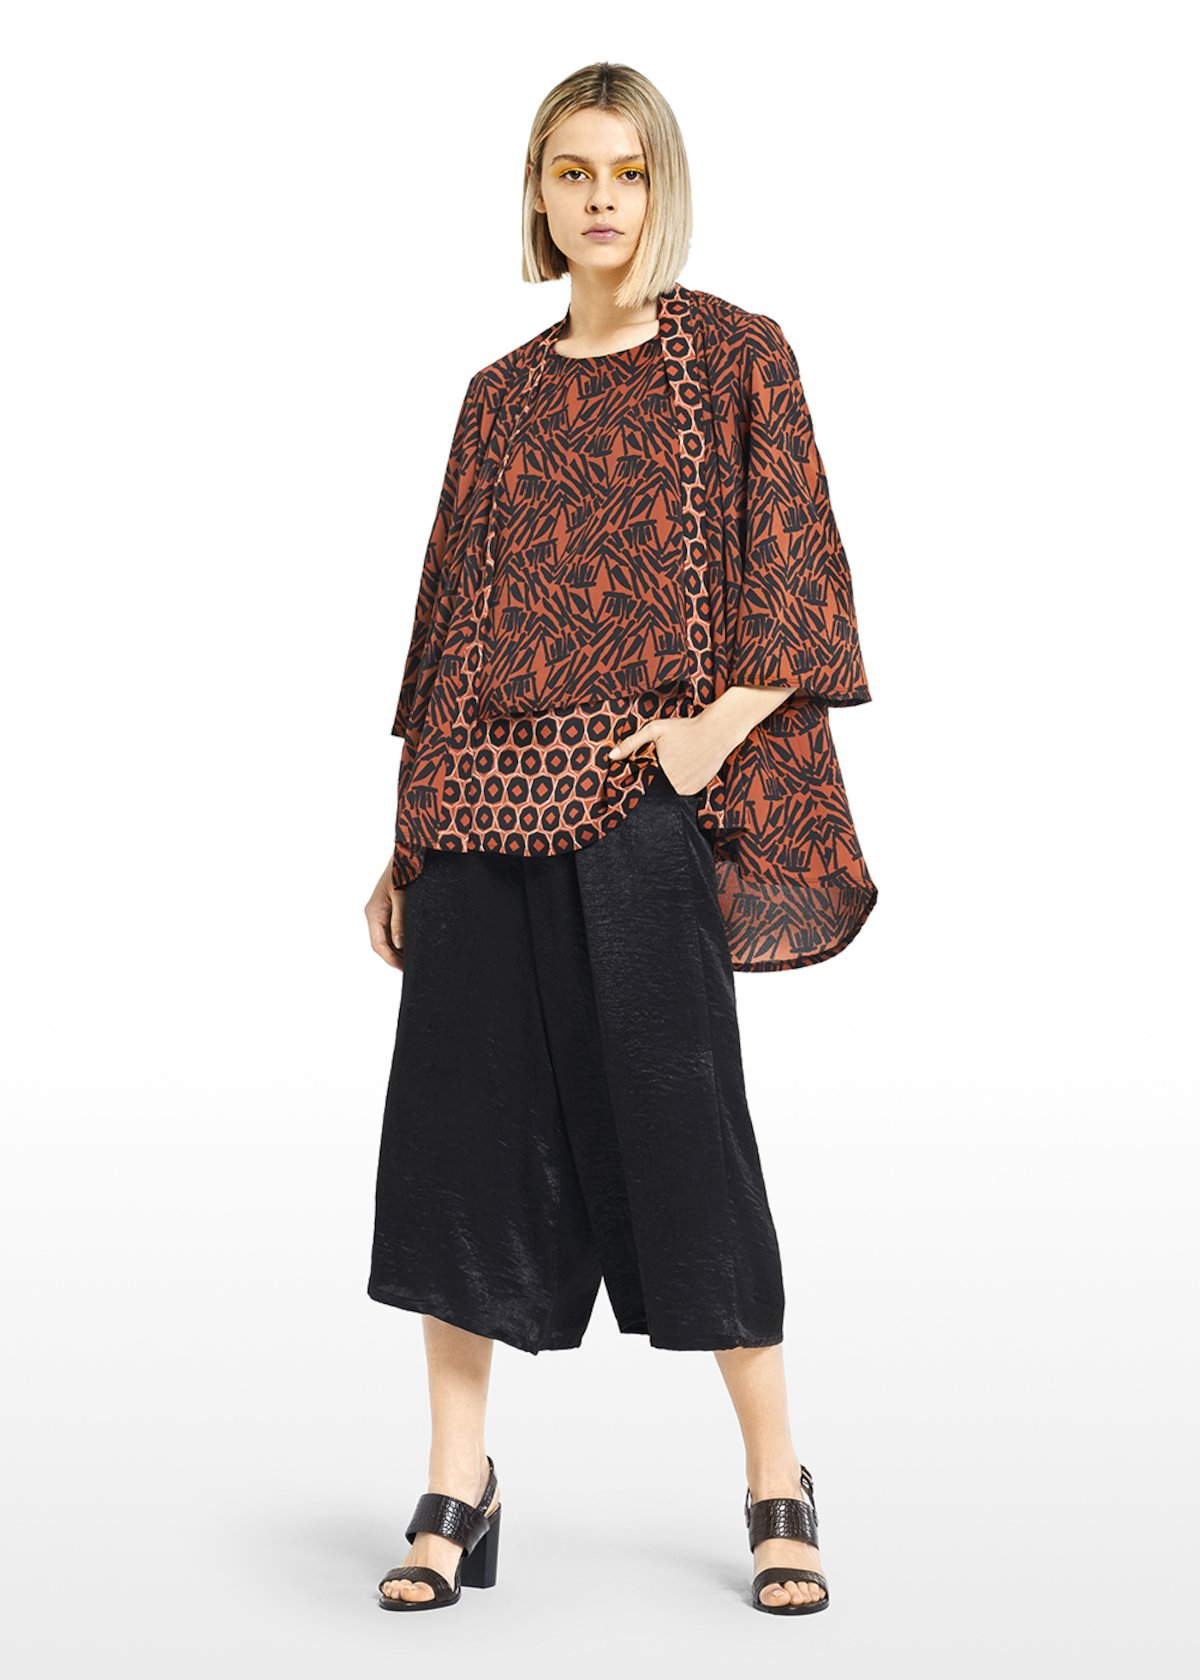 Clara shawl in Kenya patterned crêpe - Carota / Black  Fantasia - Woman - Category image